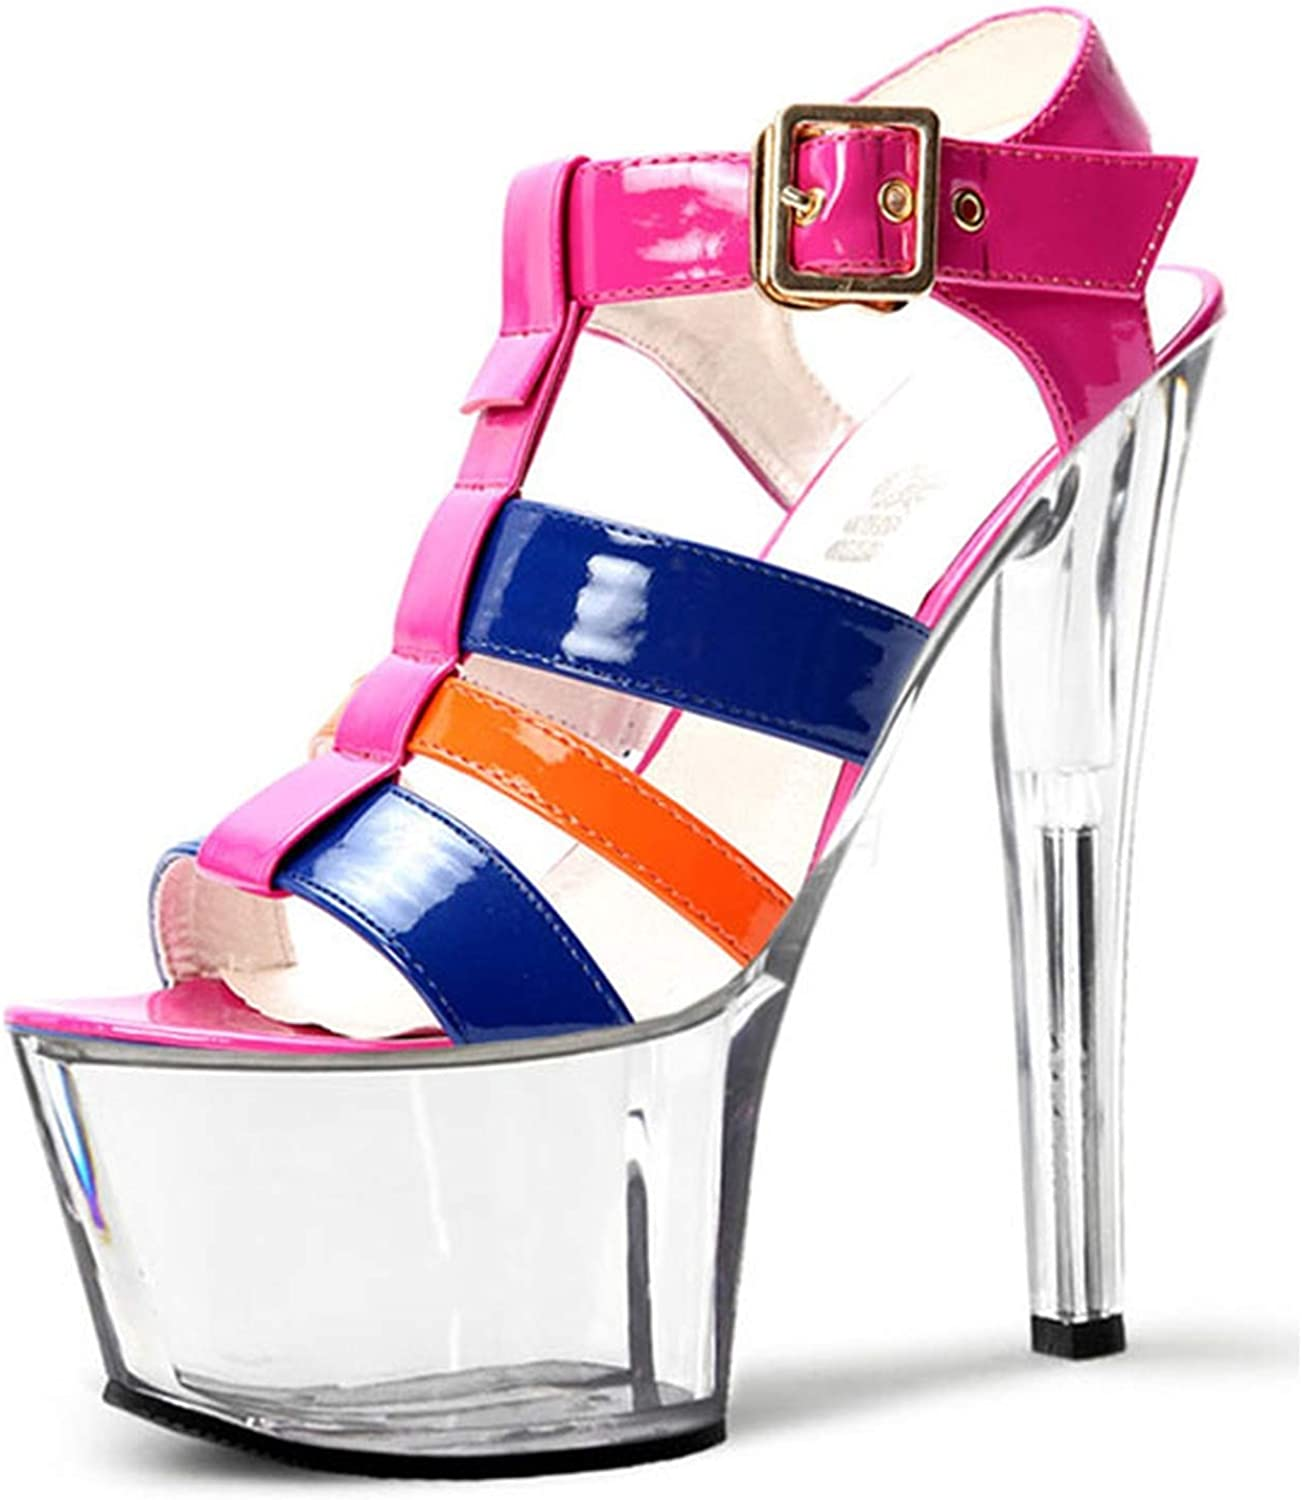 color Stage Size and Sandals,15 cm, Heel High shoes, Transparent Waterproof Platform,02,12